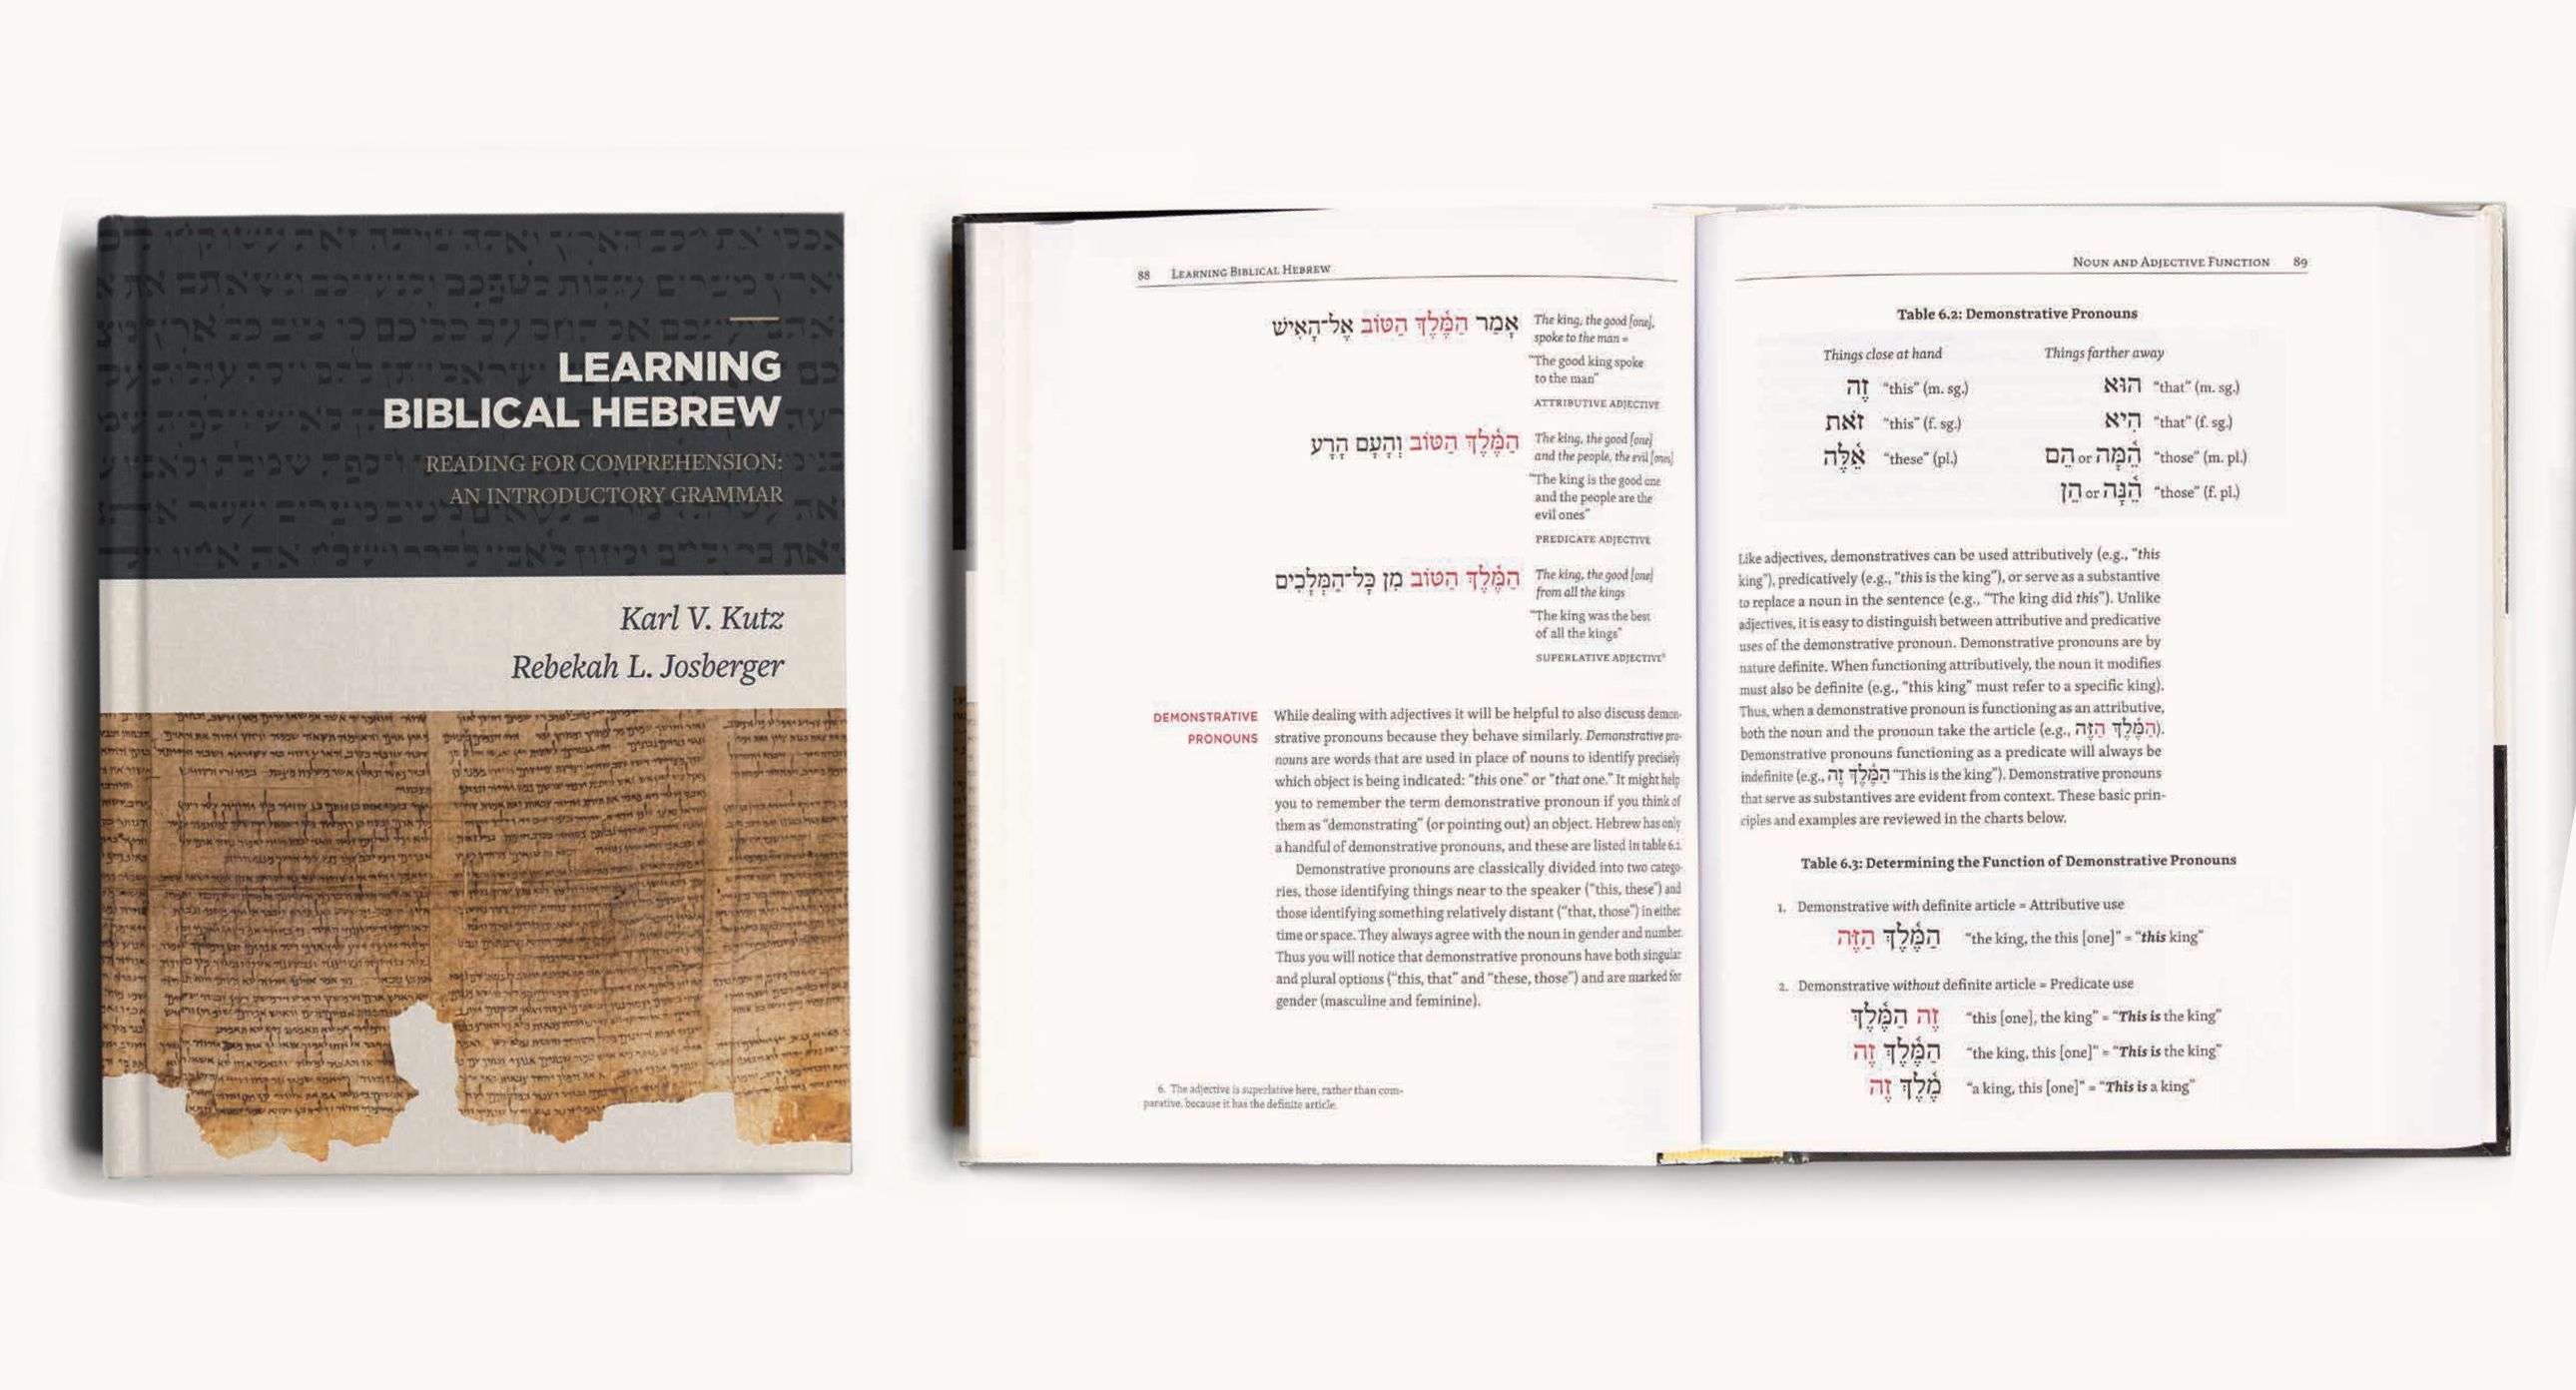 Learning Biblical Hebrew Interior